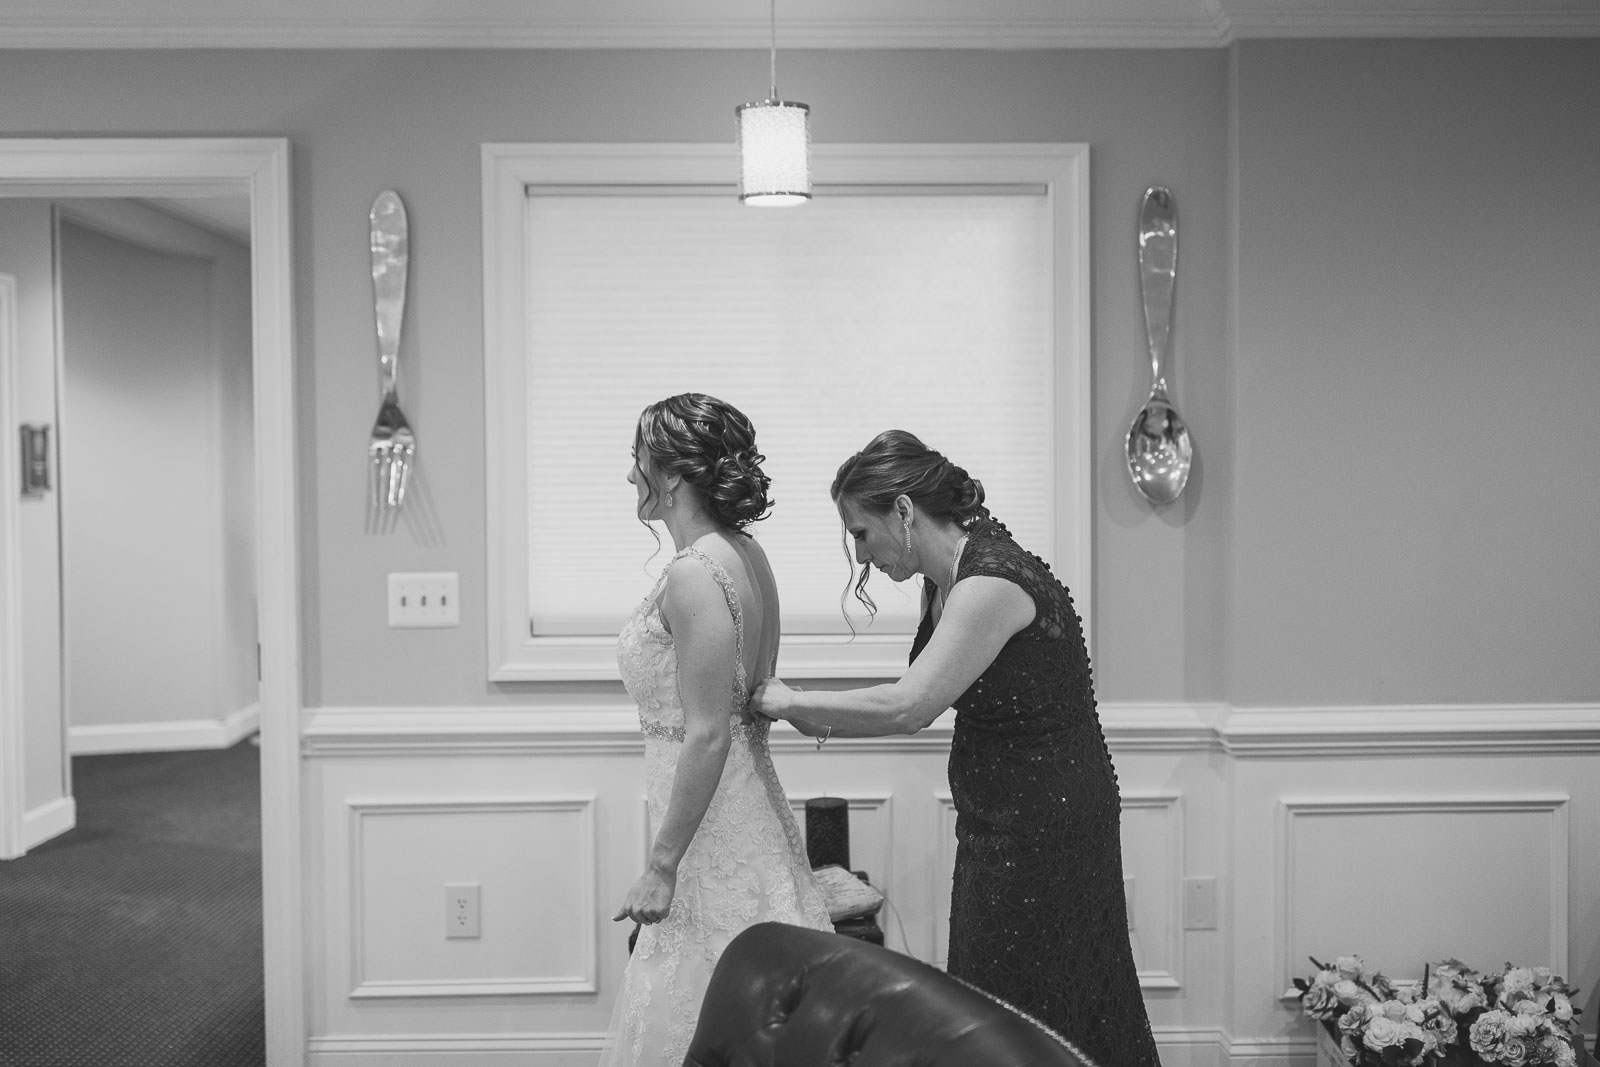 Mother helps bride put on dress